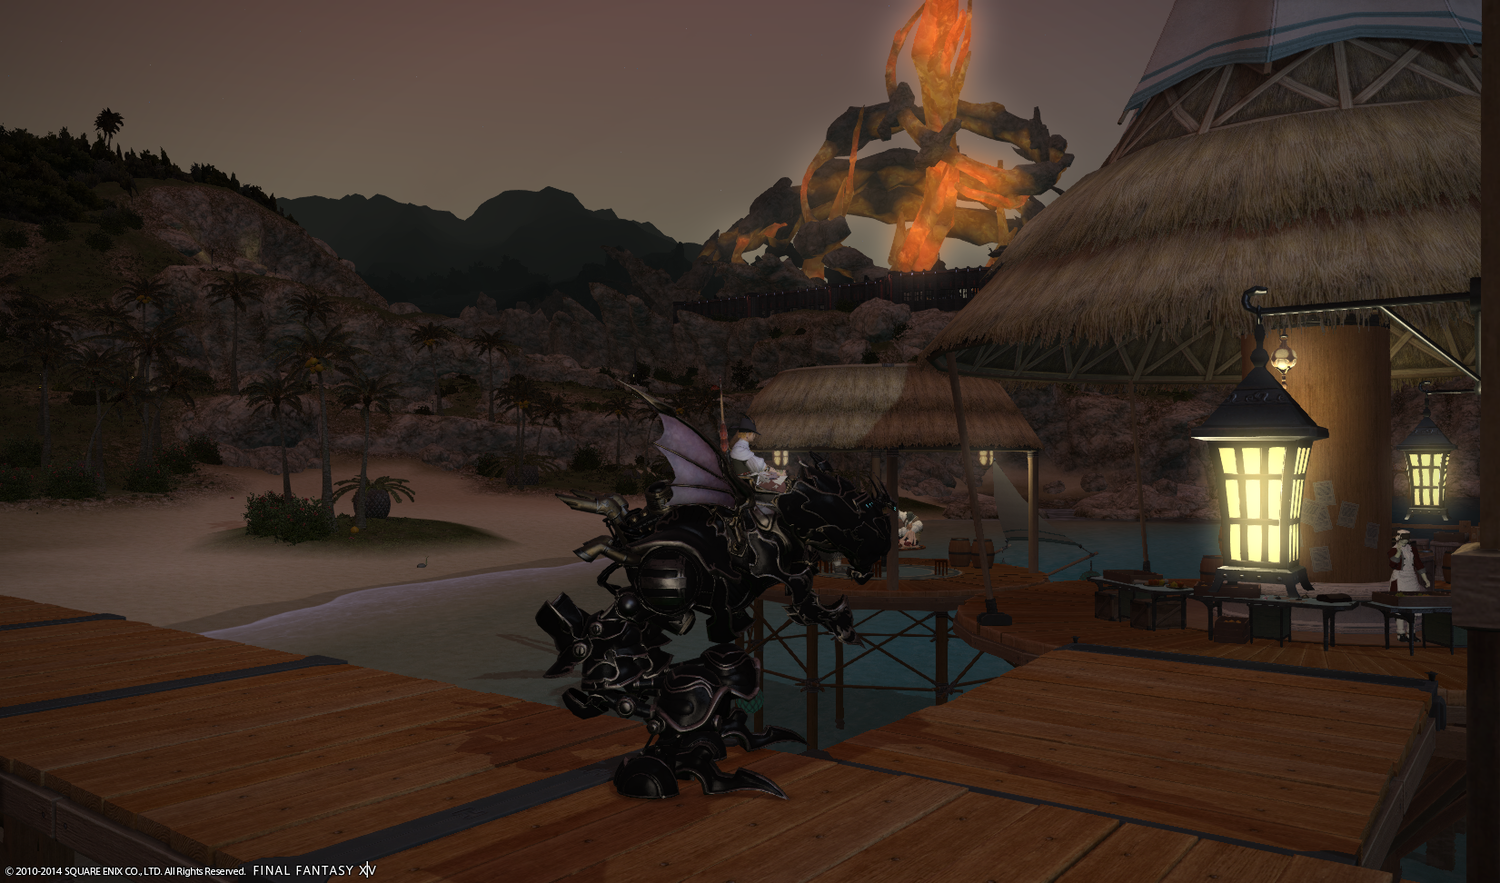 Final Fantasy XIV: A Realm Reborn Review - Part Two — Blast